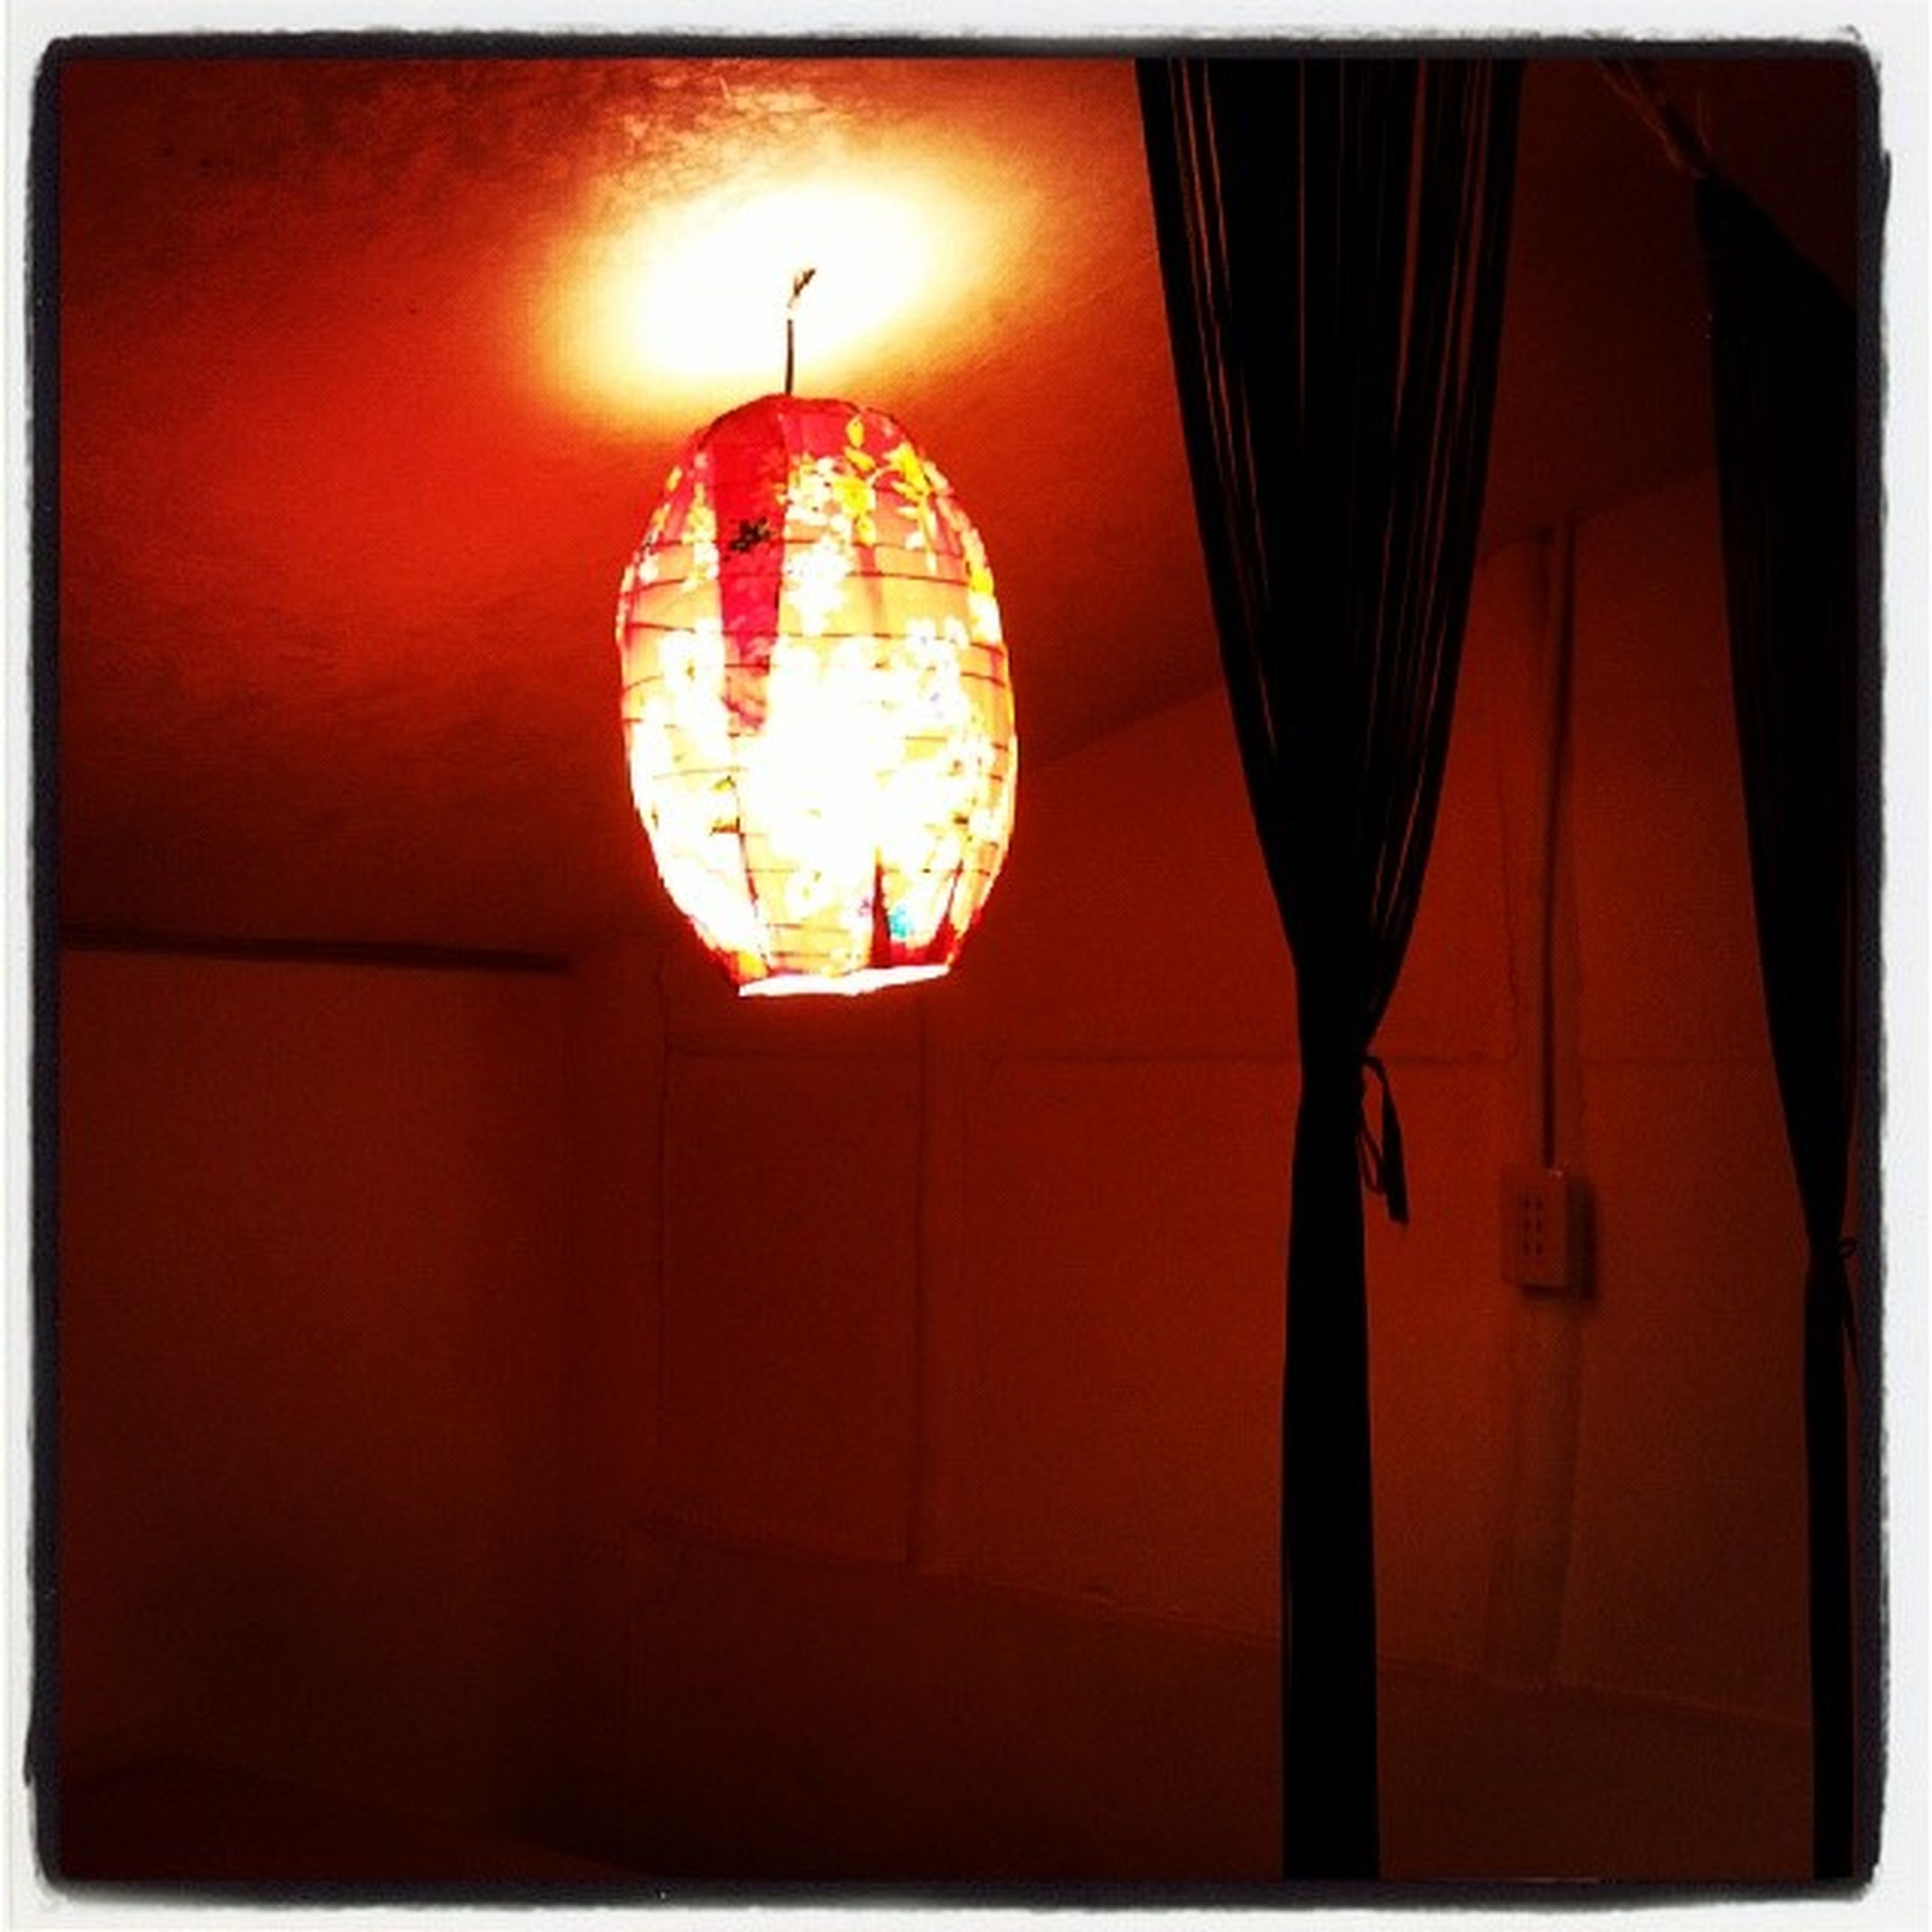 illuminated, lighting equipment, transfer print, auto post production filter, indoors, hanging, low angle view, lantern, orange color, electricity, built structure, electric lamp, night, electric light, architecture, glowing, red, decoration, light - natural phenomenon, ceiling